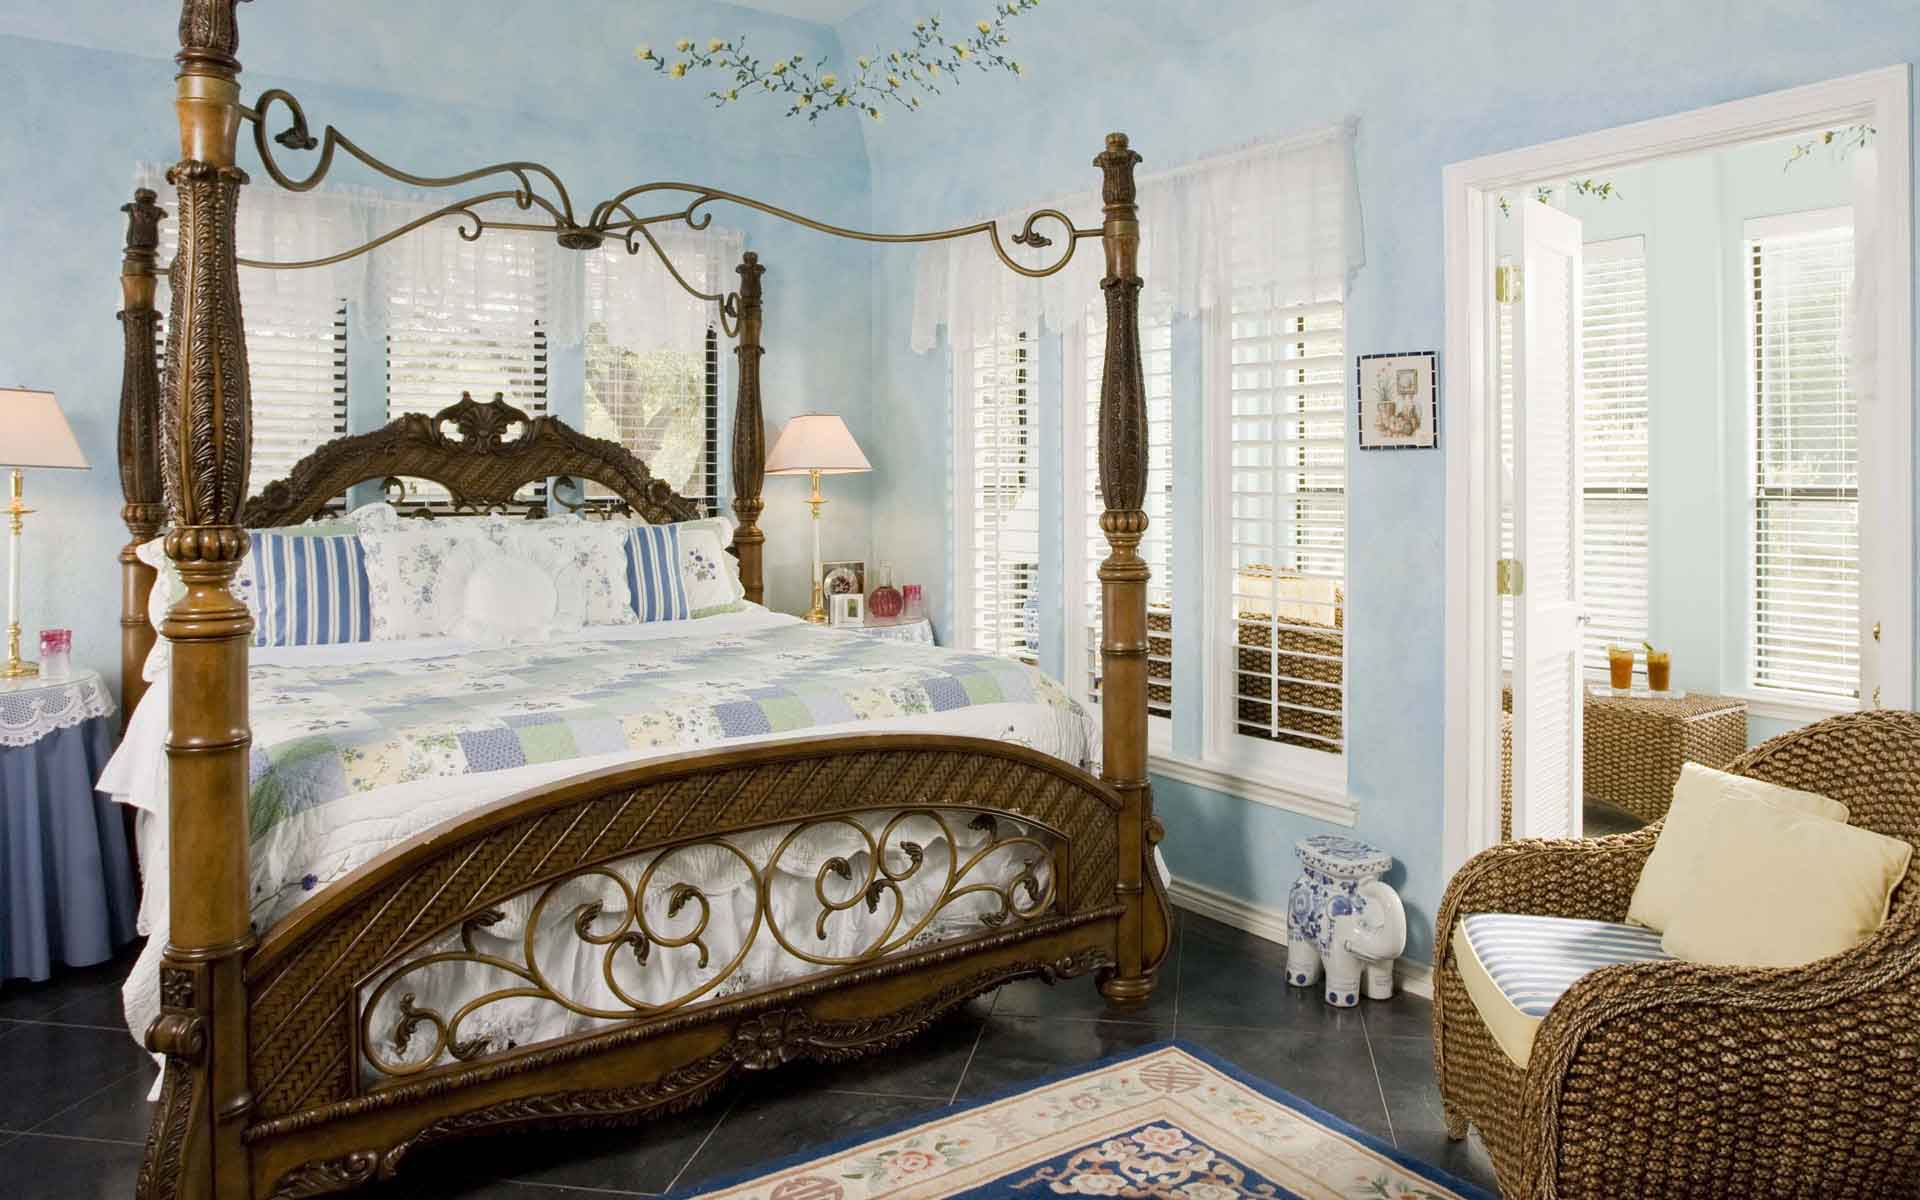 18-delightful-amp-romantic-bedroom-design-elsafana-by-suprin-with-regard-to-romantic-bedroom-decorating-ideas-for-your-home